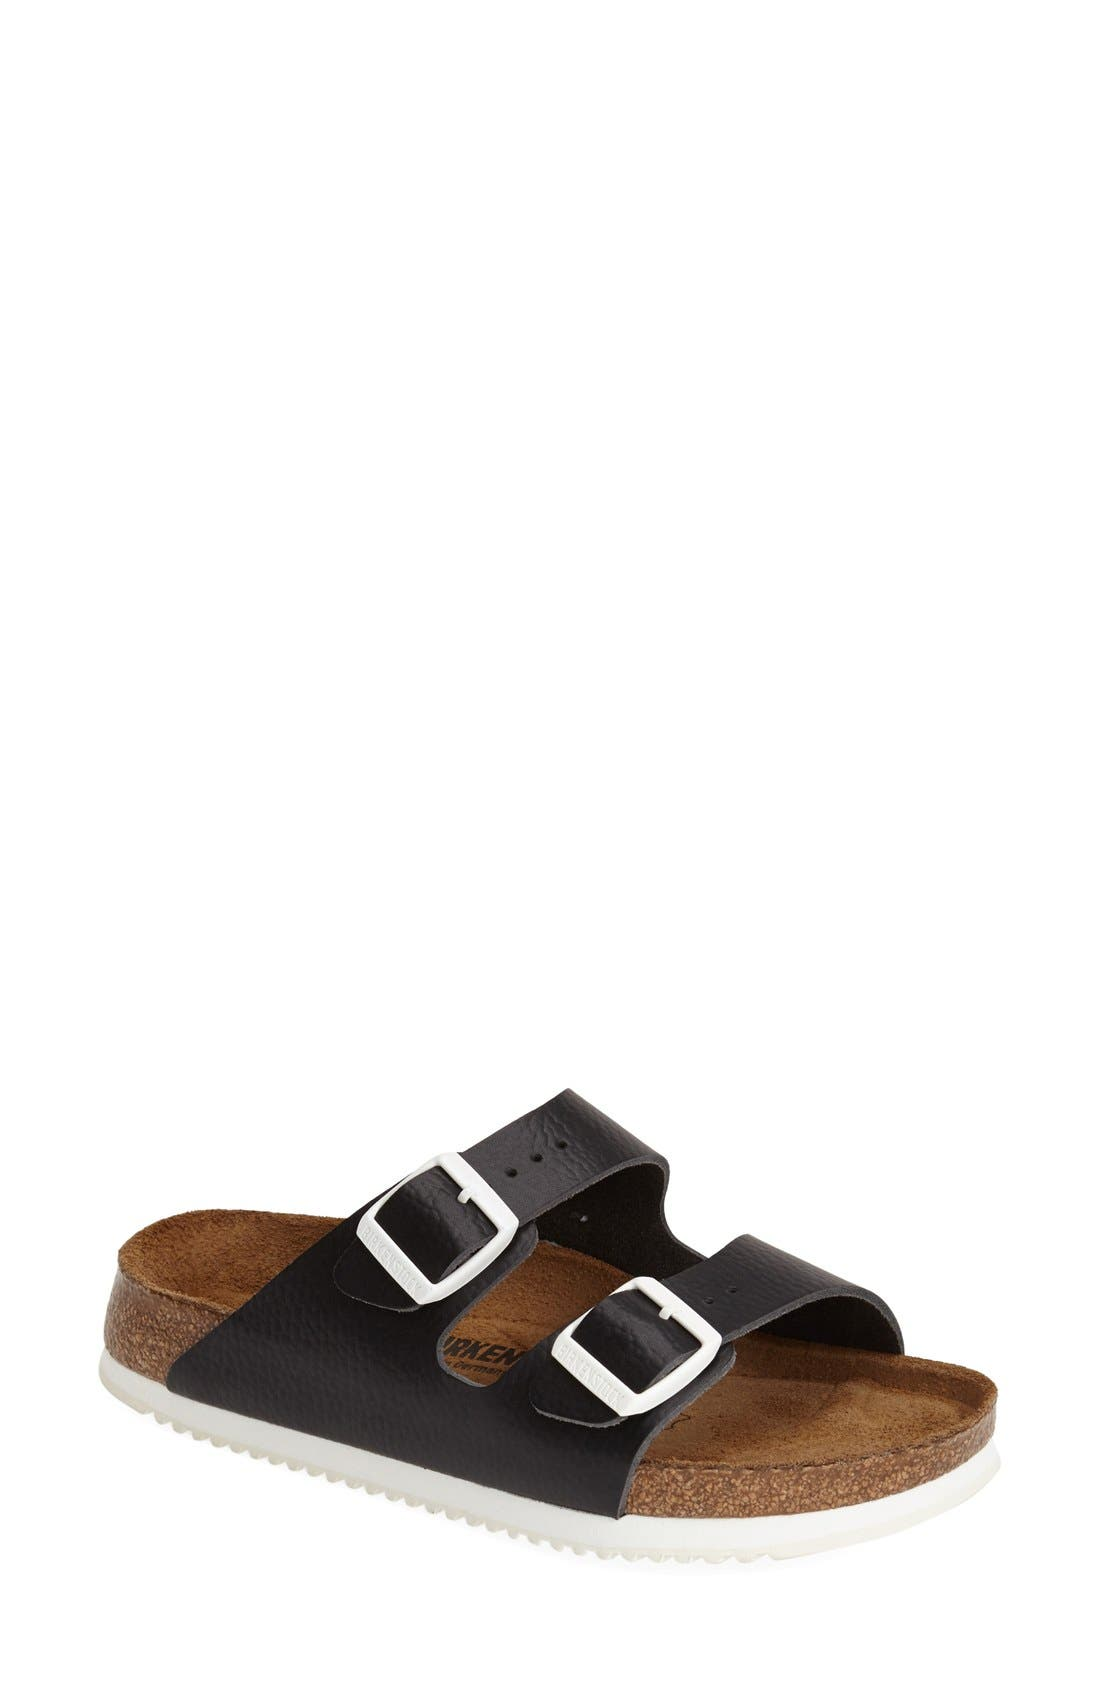 BIRKENSTOCK, 'Arizona' Leather Double Band Footbed Sandal, Main thumbnail 1, color, 001